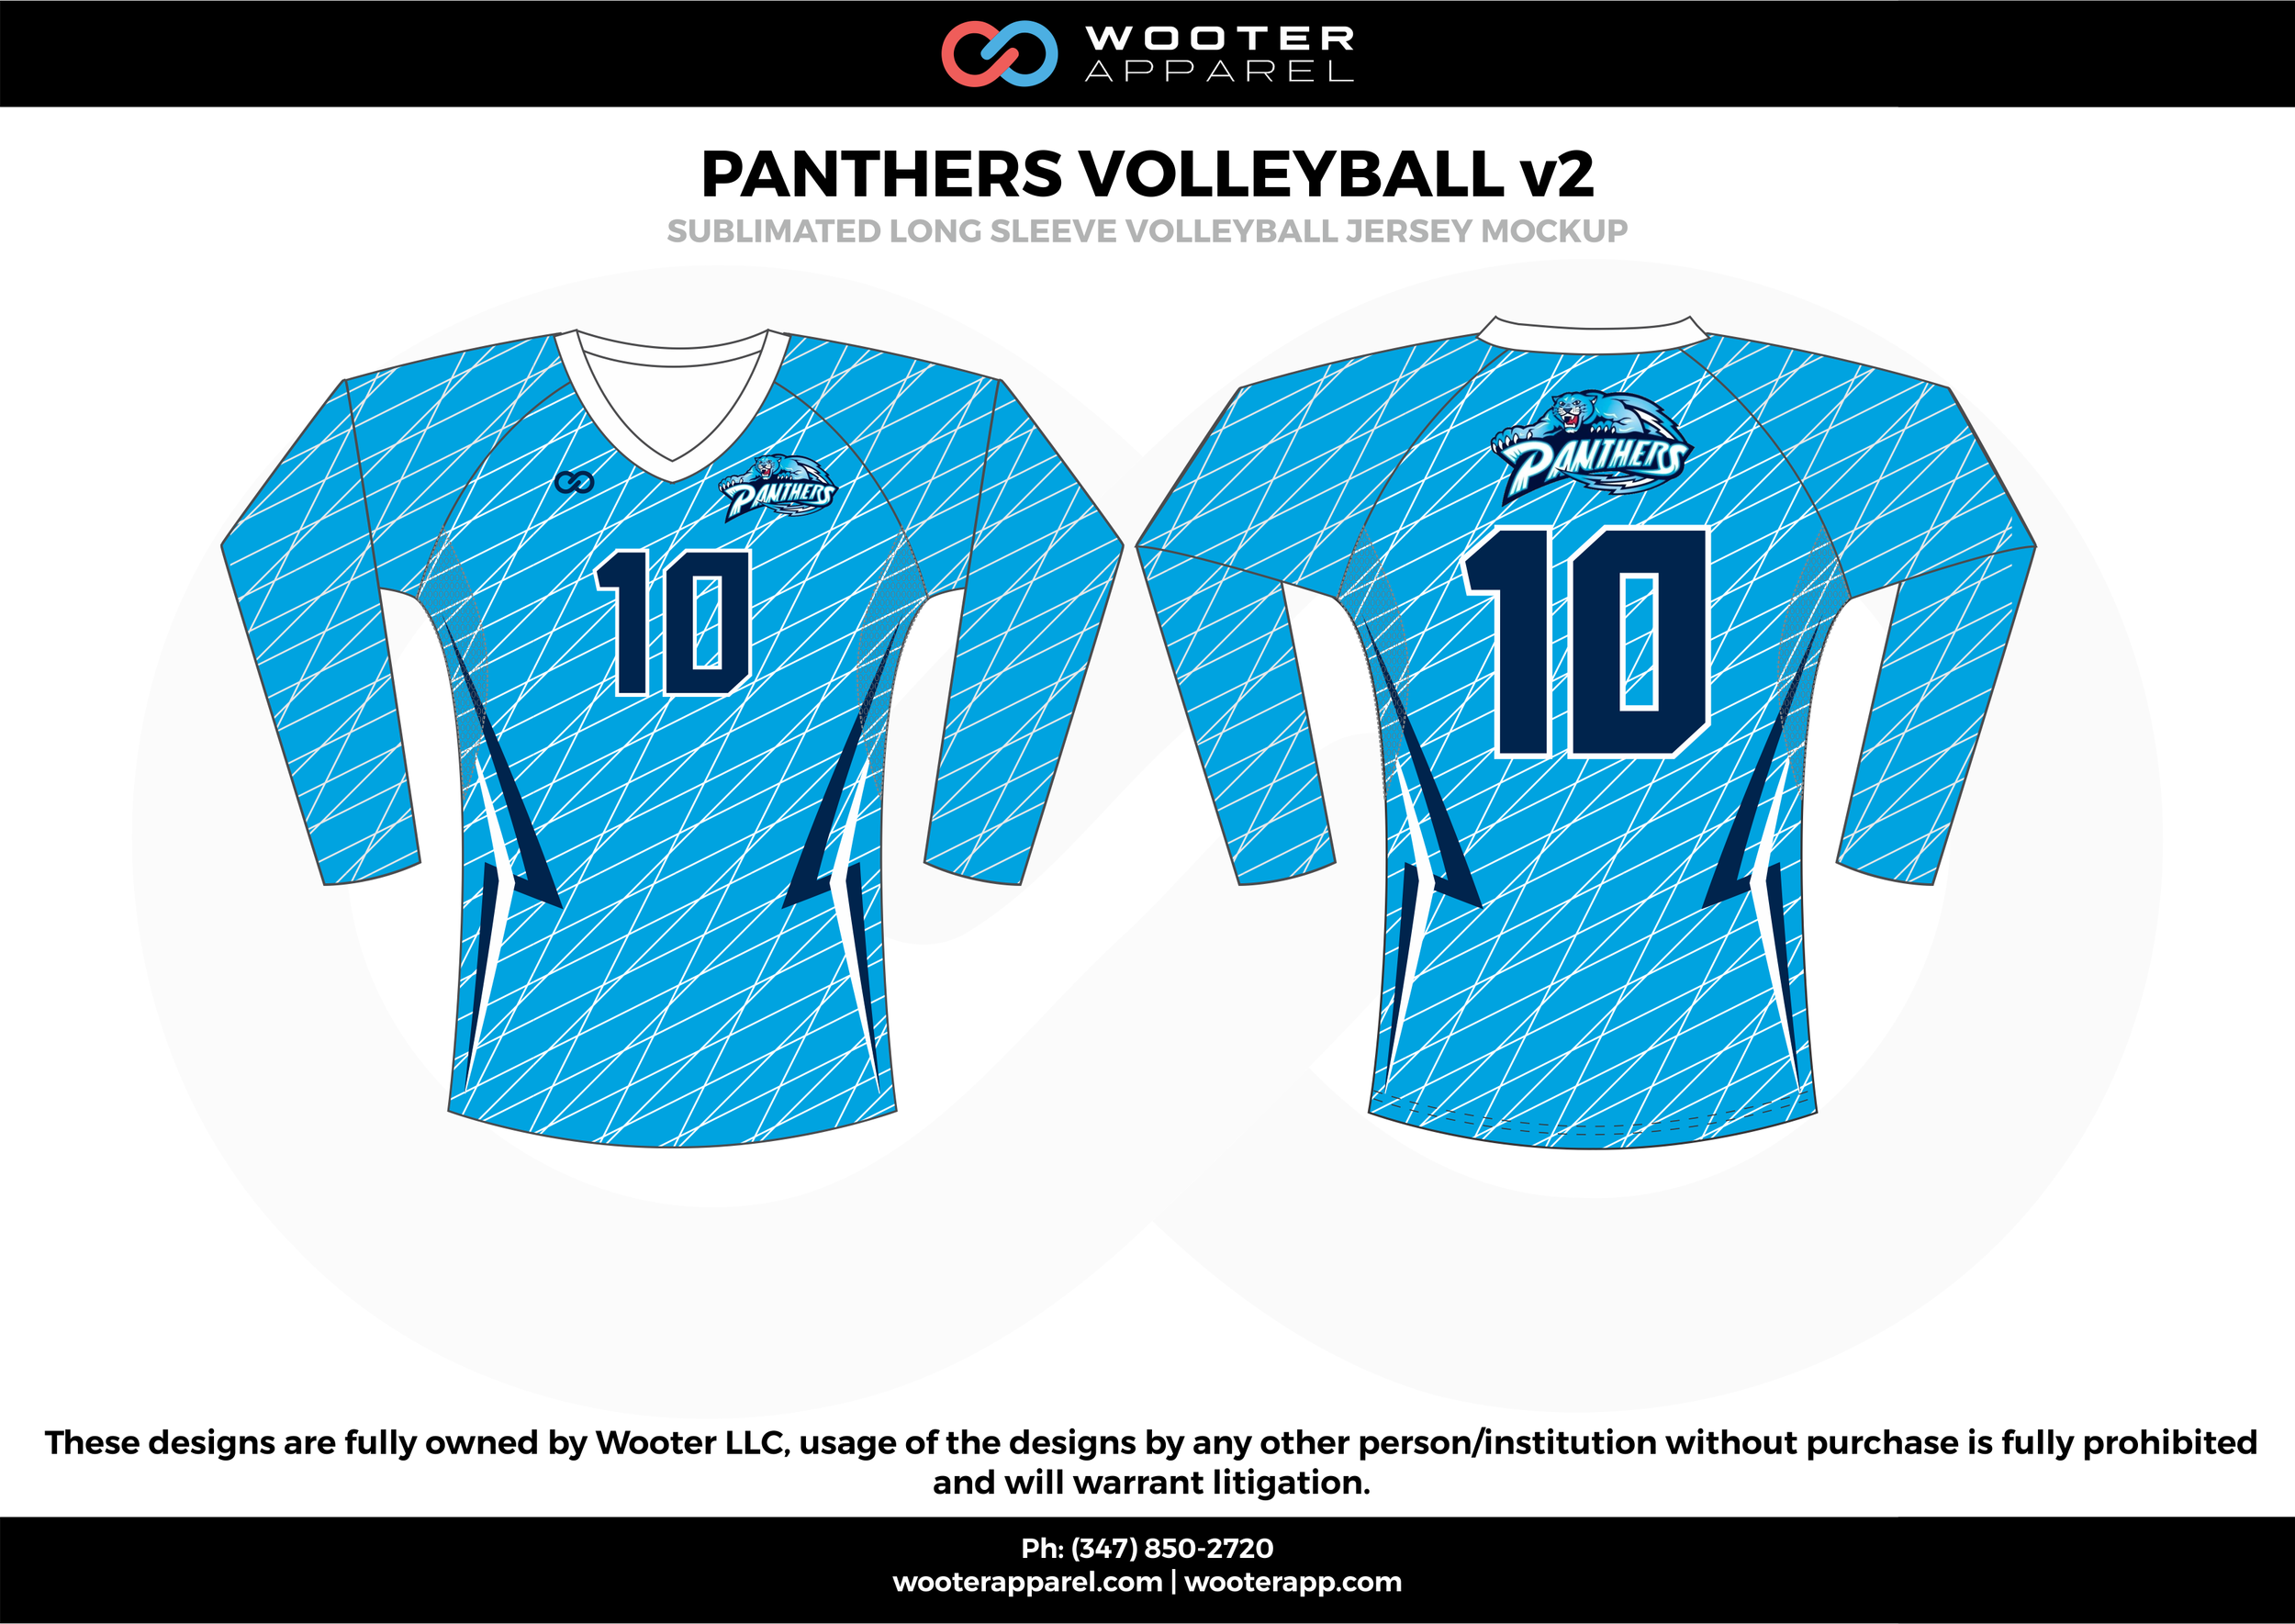 PANTHERS VOLLEYBALL v2 sky navy blue white Volleyball Uniforms, Long Sleeve Jerseys